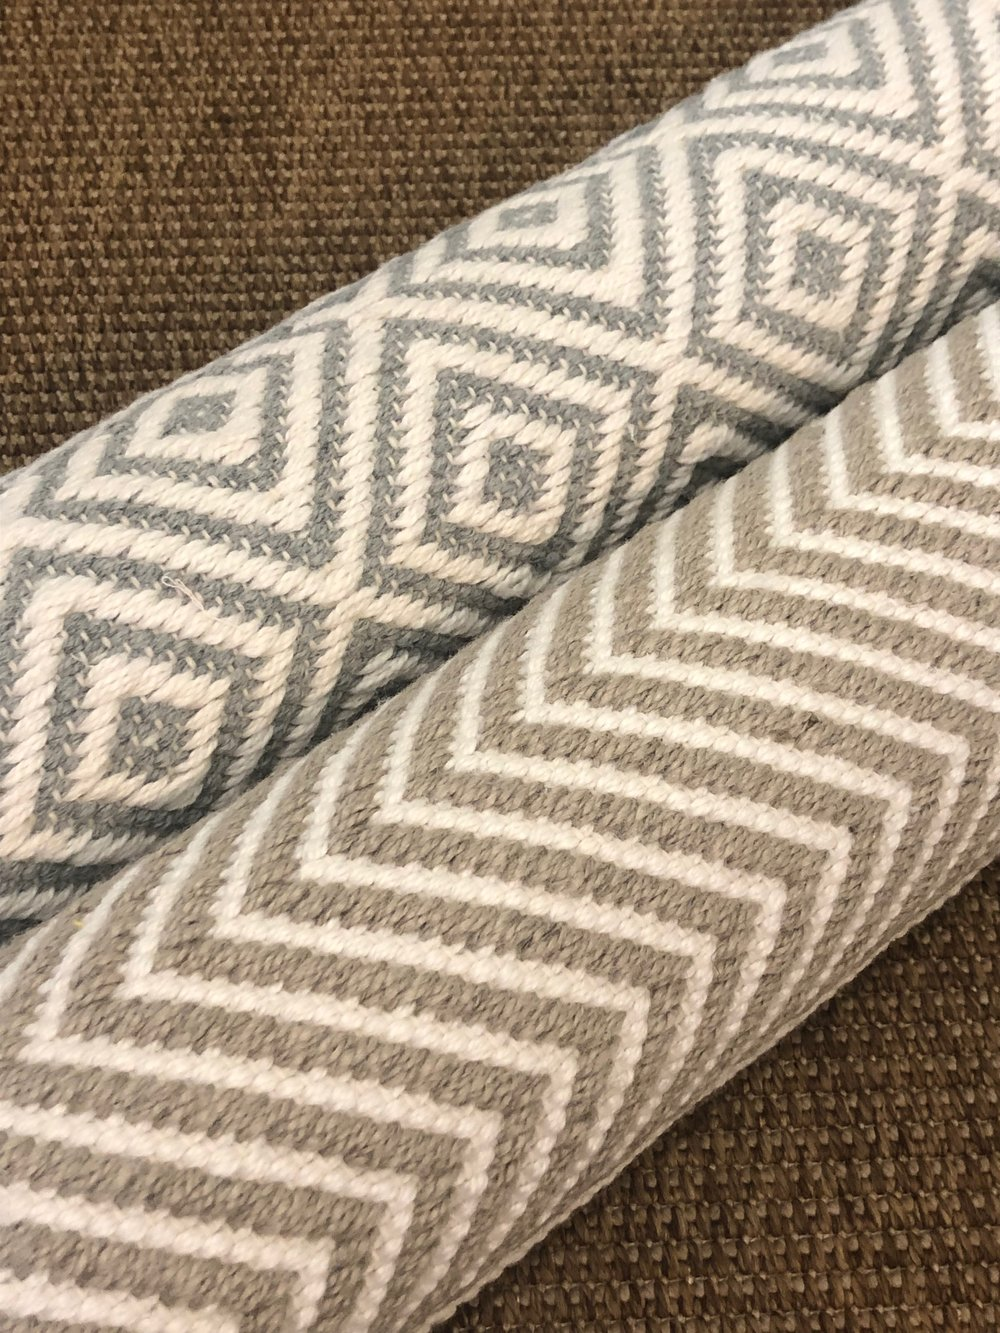 Woven Recycled Rug RSD002